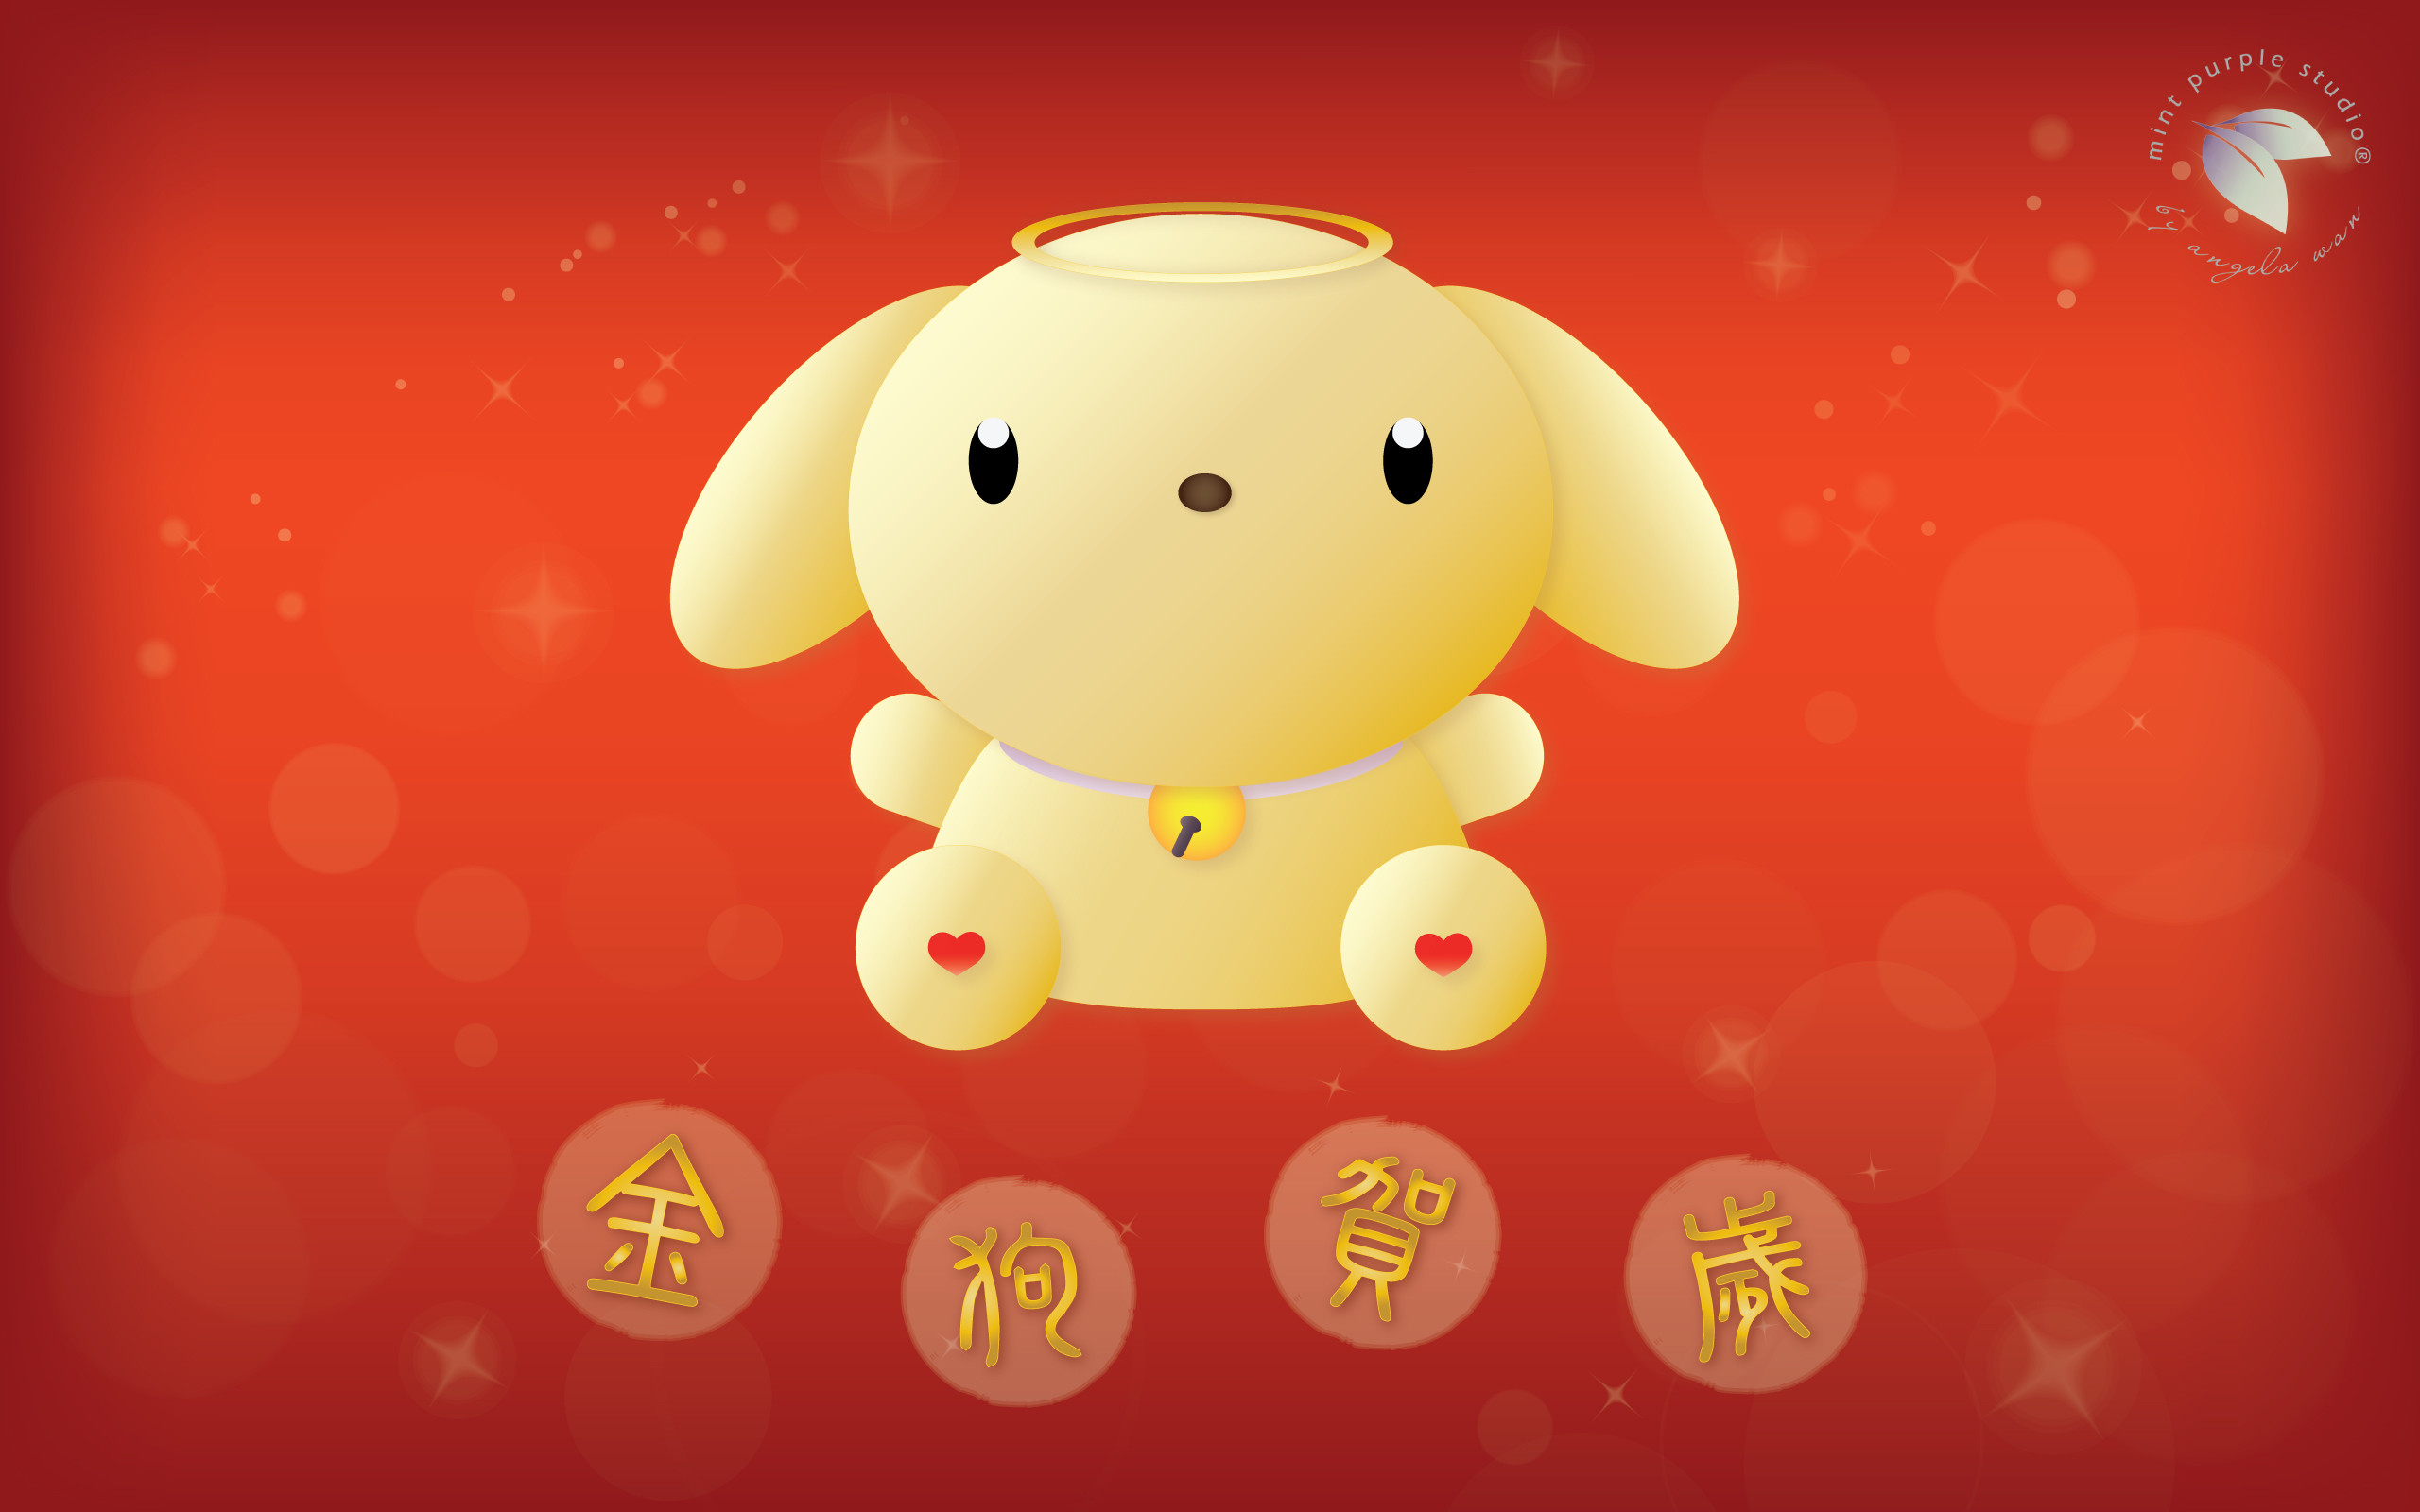 2560x1600 Download the Mr. Delle 2560 x 1600 Wallpaper HERE. 金狗賀歲 translates to the  golden dog celebrates the new year and wishes the recipient of this  greeting a ...